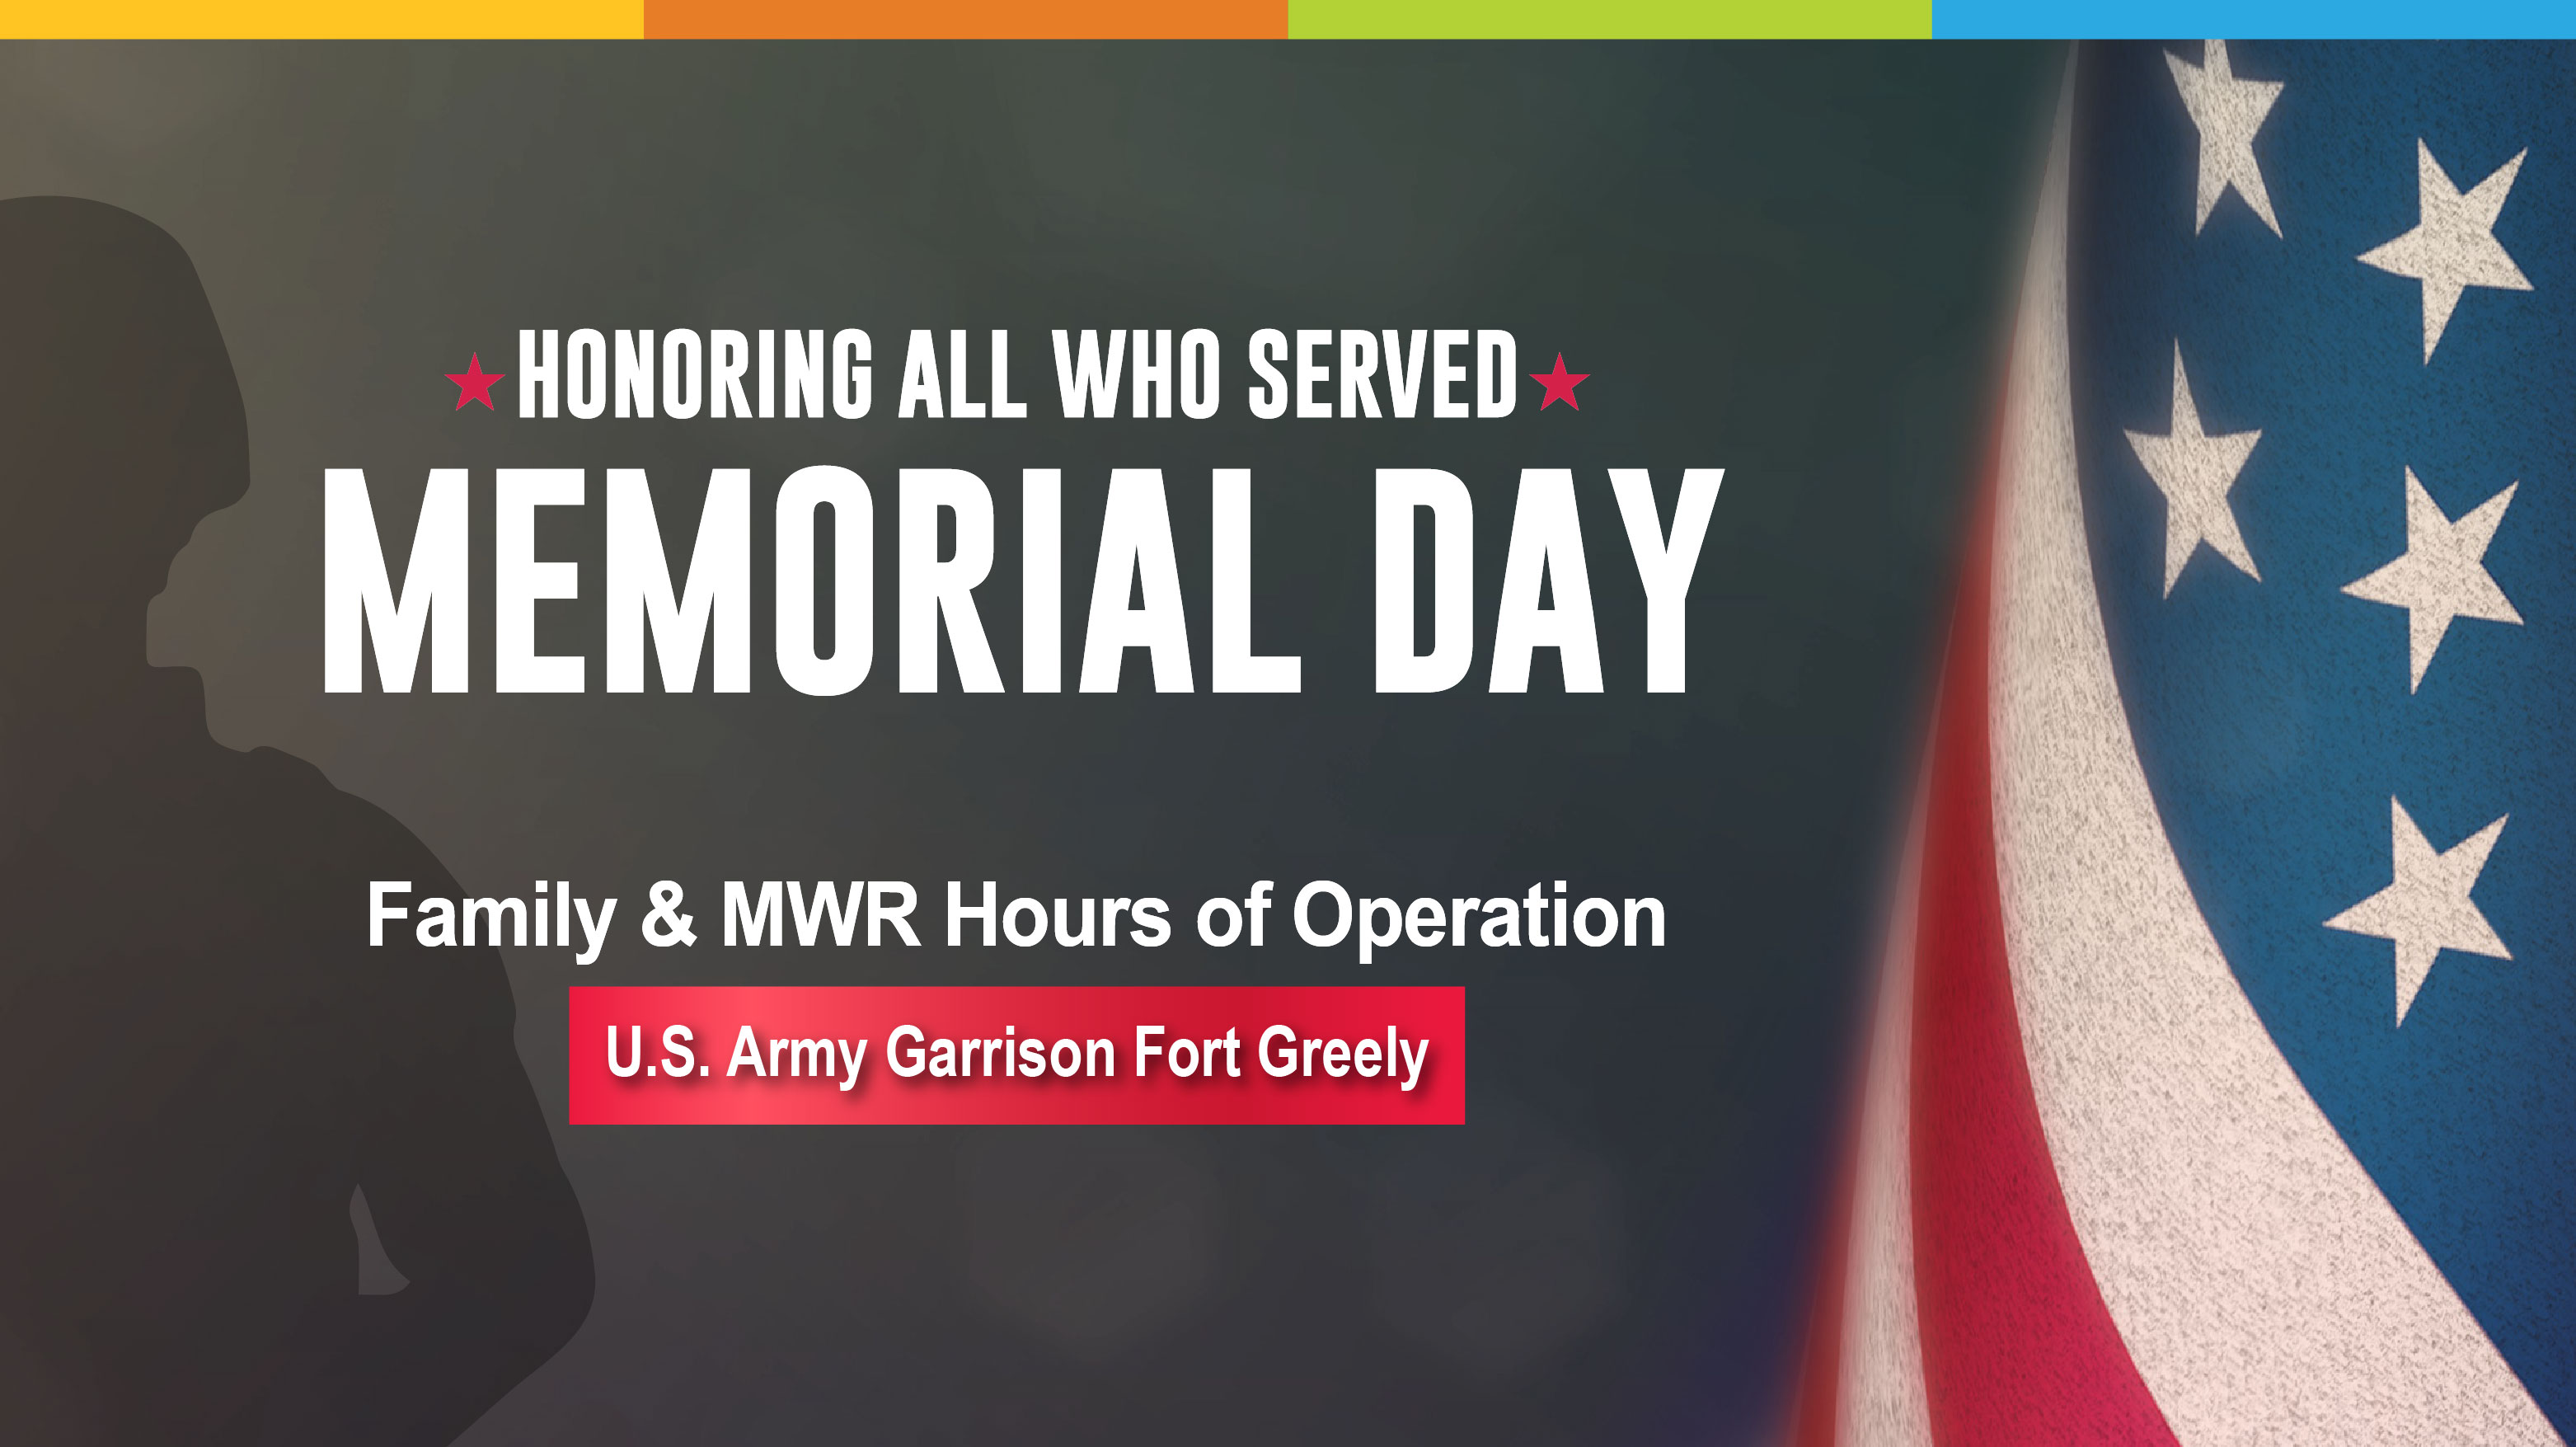 Memorial Day - MWR Hours of Operation